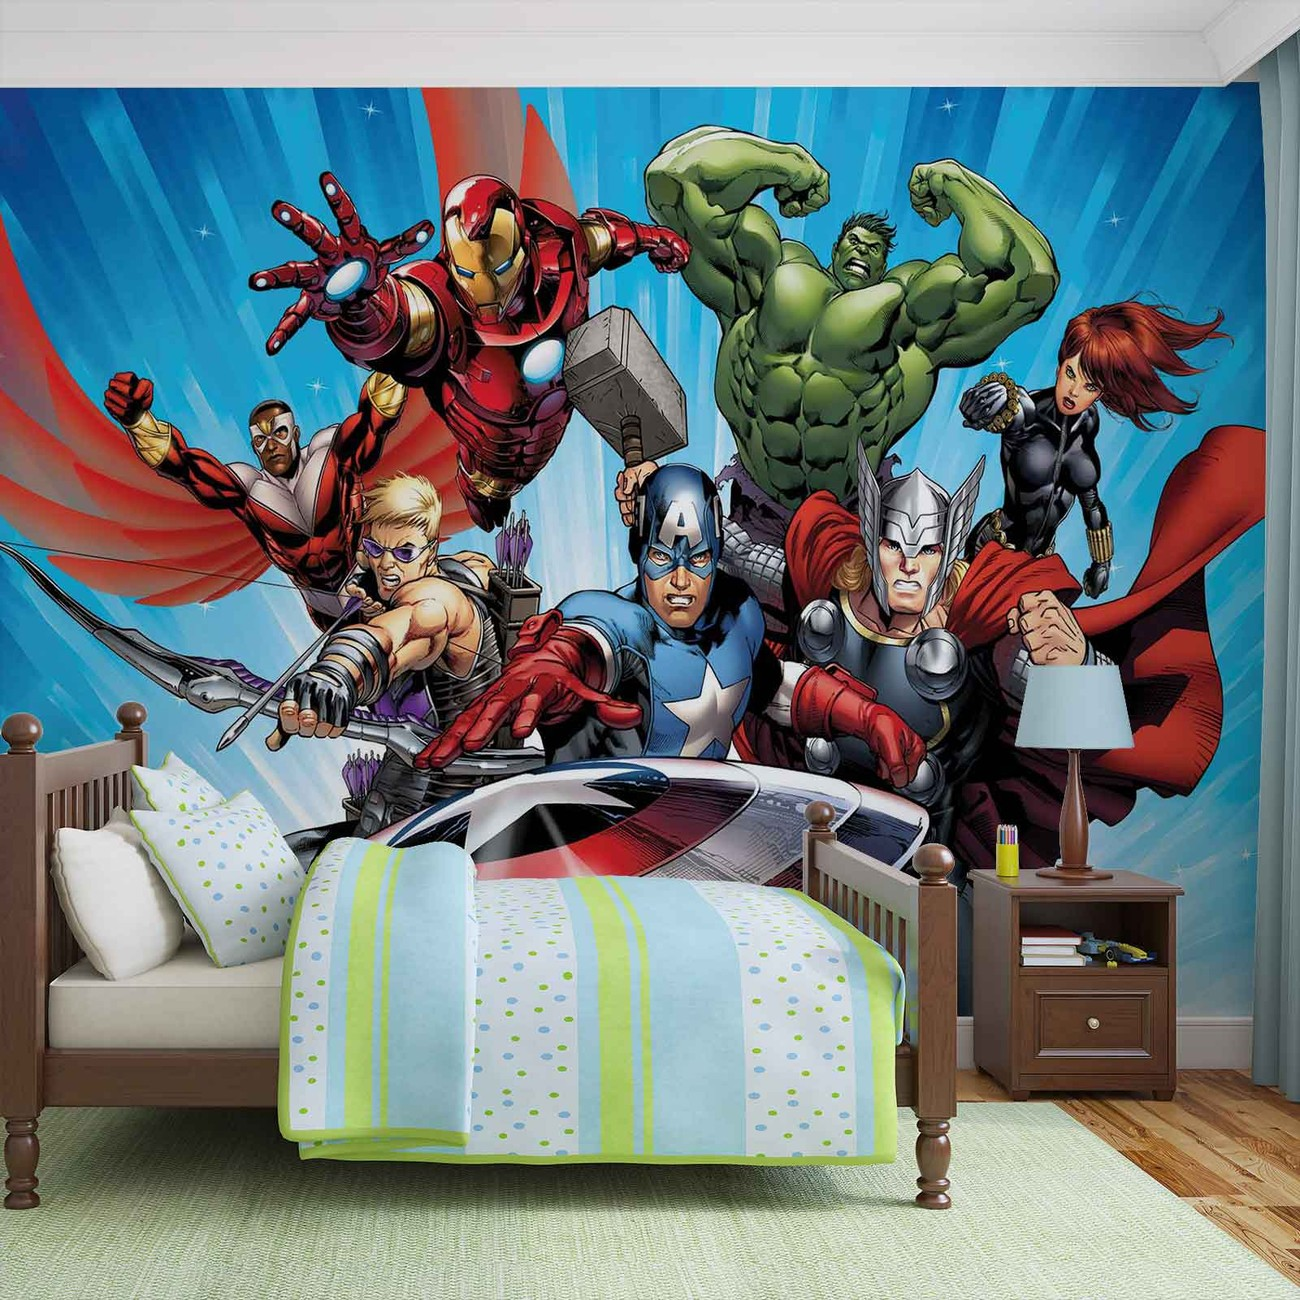 Marvel avengers wall paper mural buy at europosters for Chambre 13 film